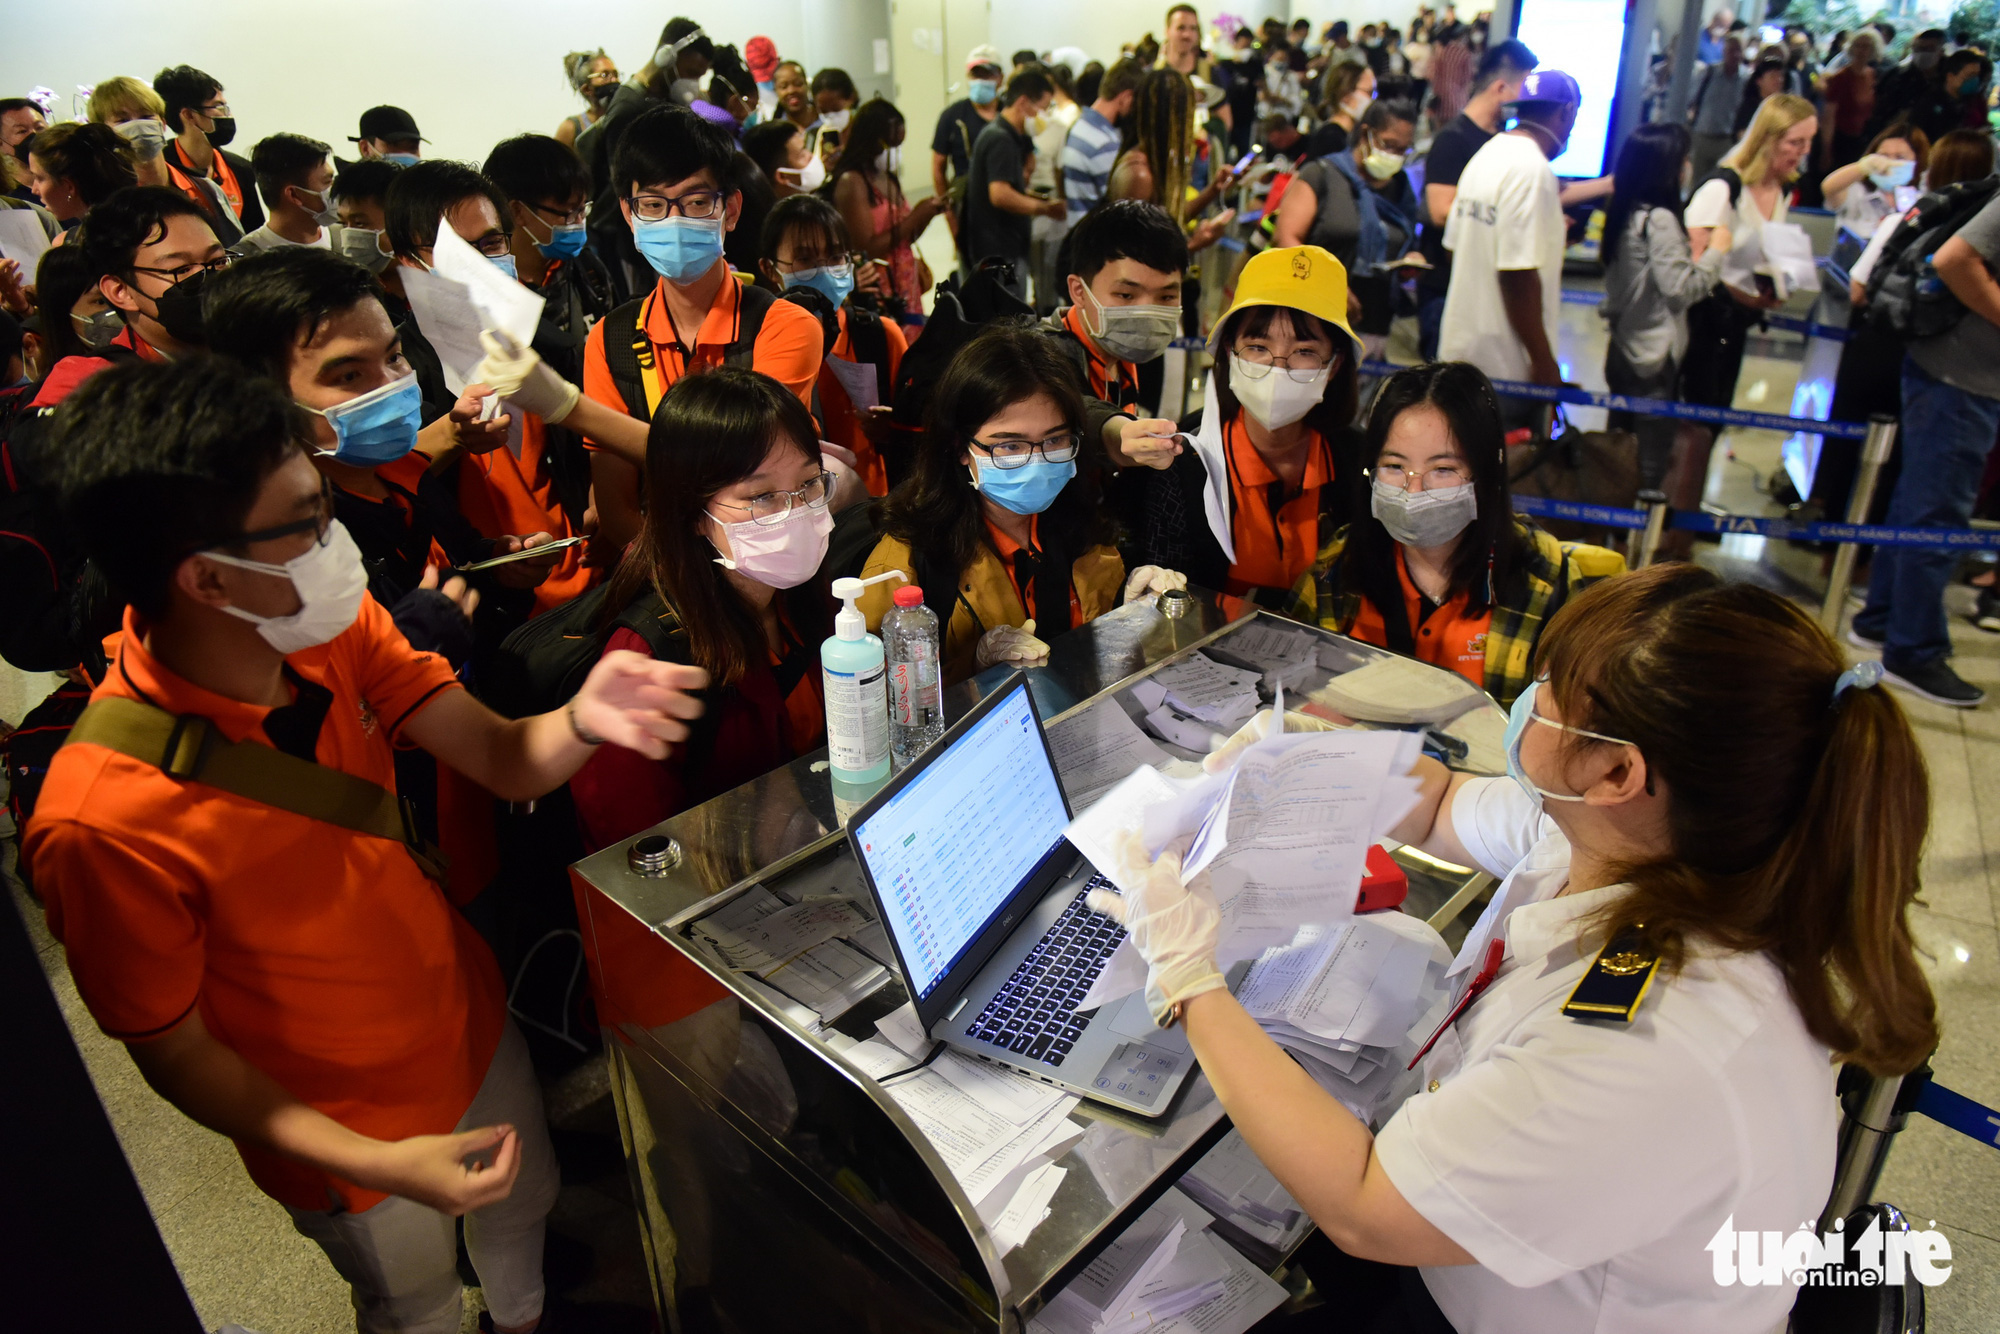 A group of FPT University students provide health declarations at Tan Son Nhat International Airport in Ho Chi Minh City. Photo: Quang Dinh / Tuoi Tre